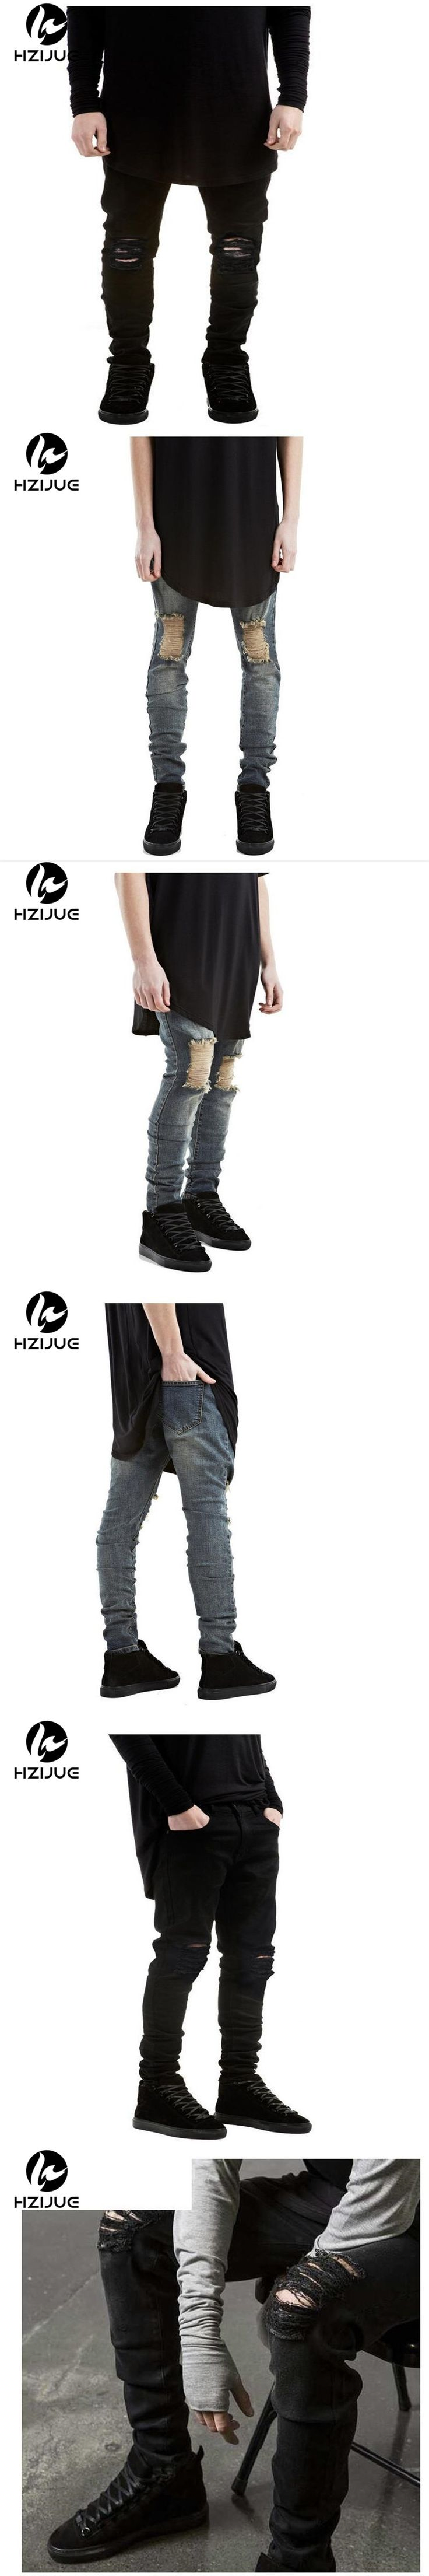 HZIJUE 2017 new arrival ripped causal pants male jeans Men Jeans Stretch Destroy Ripped Design Fashion Ankle Zipper Skinny Jeans